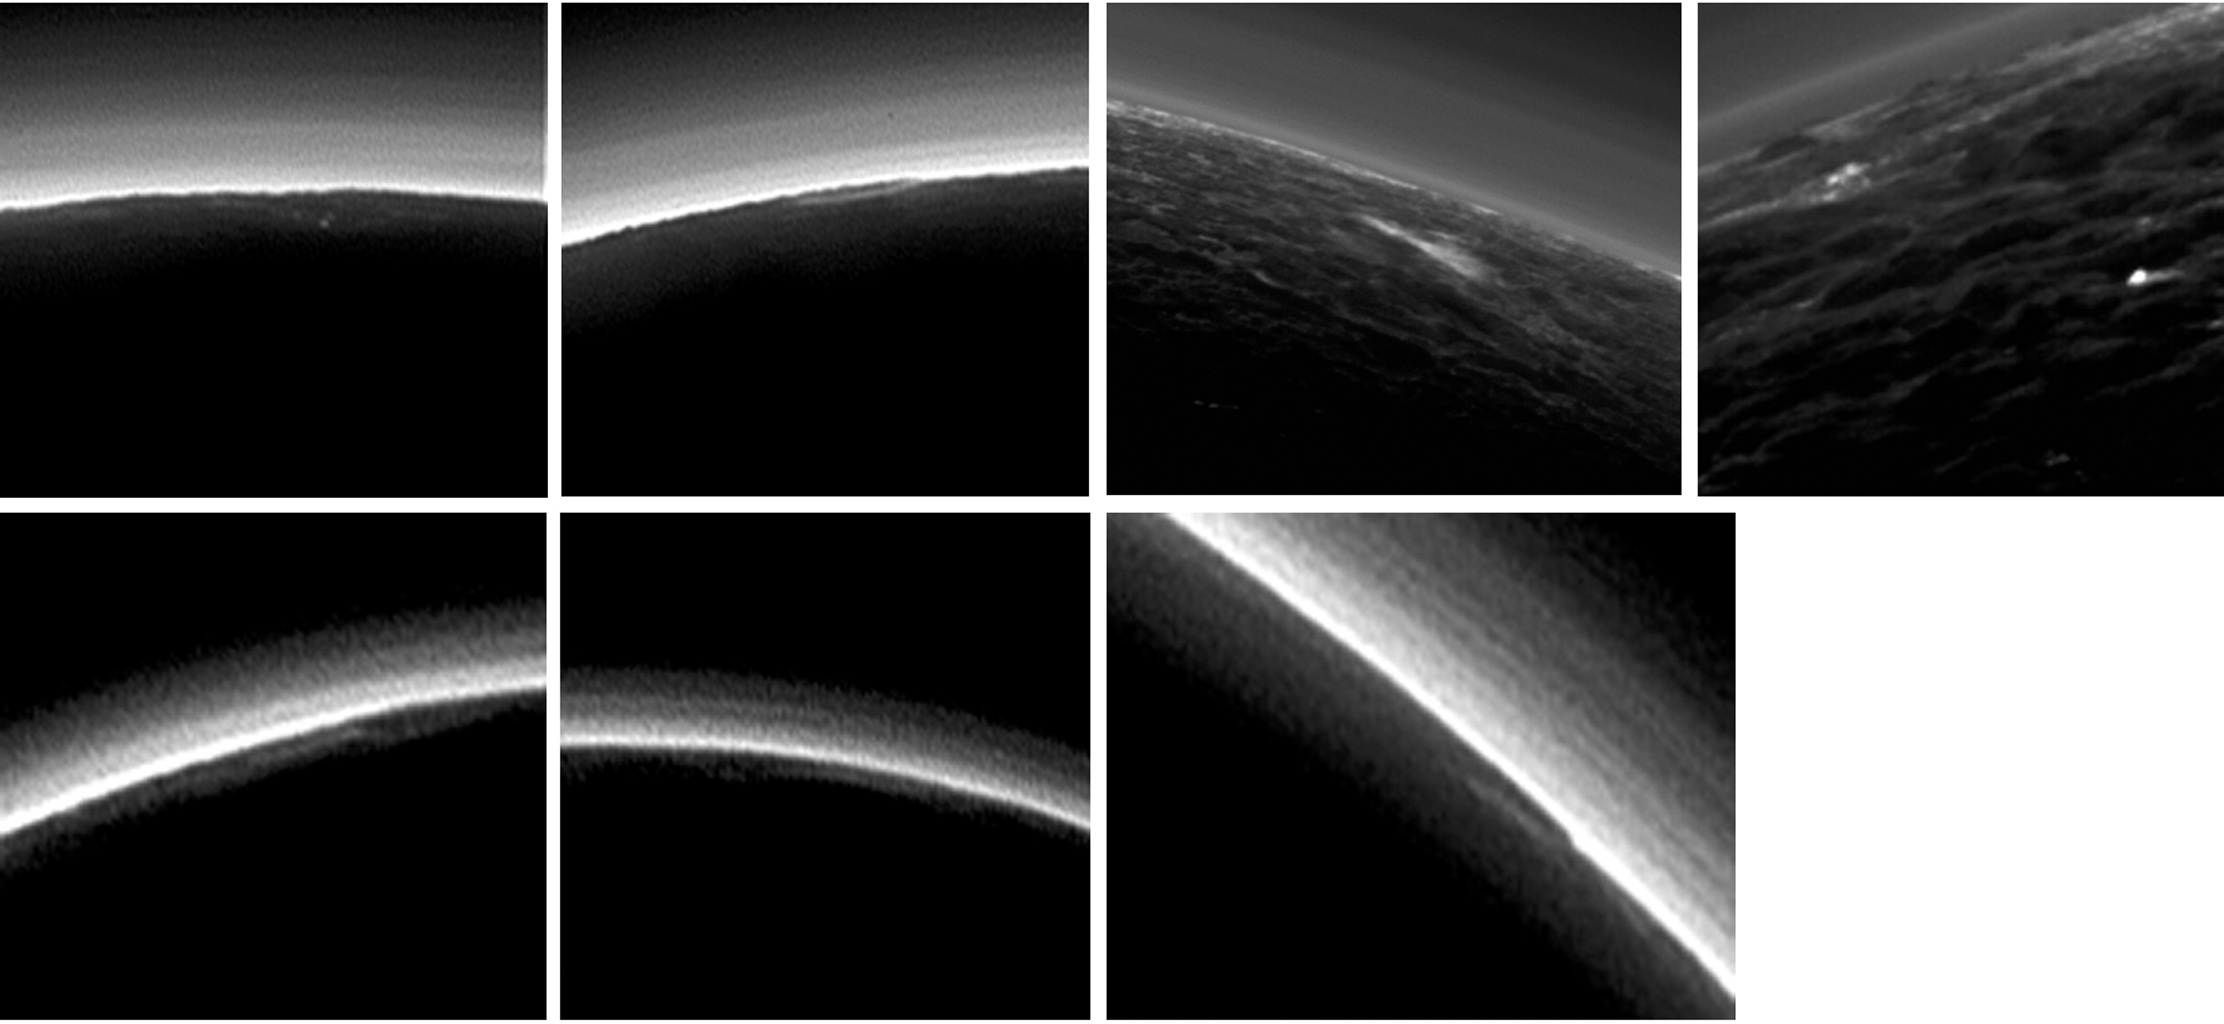 Pluto's present, hazy atmosphere is almost entirely free of clouds, though scientists from NASA's New Horizons mission have identified some cloud candidates after examining images taken during July, 2015.